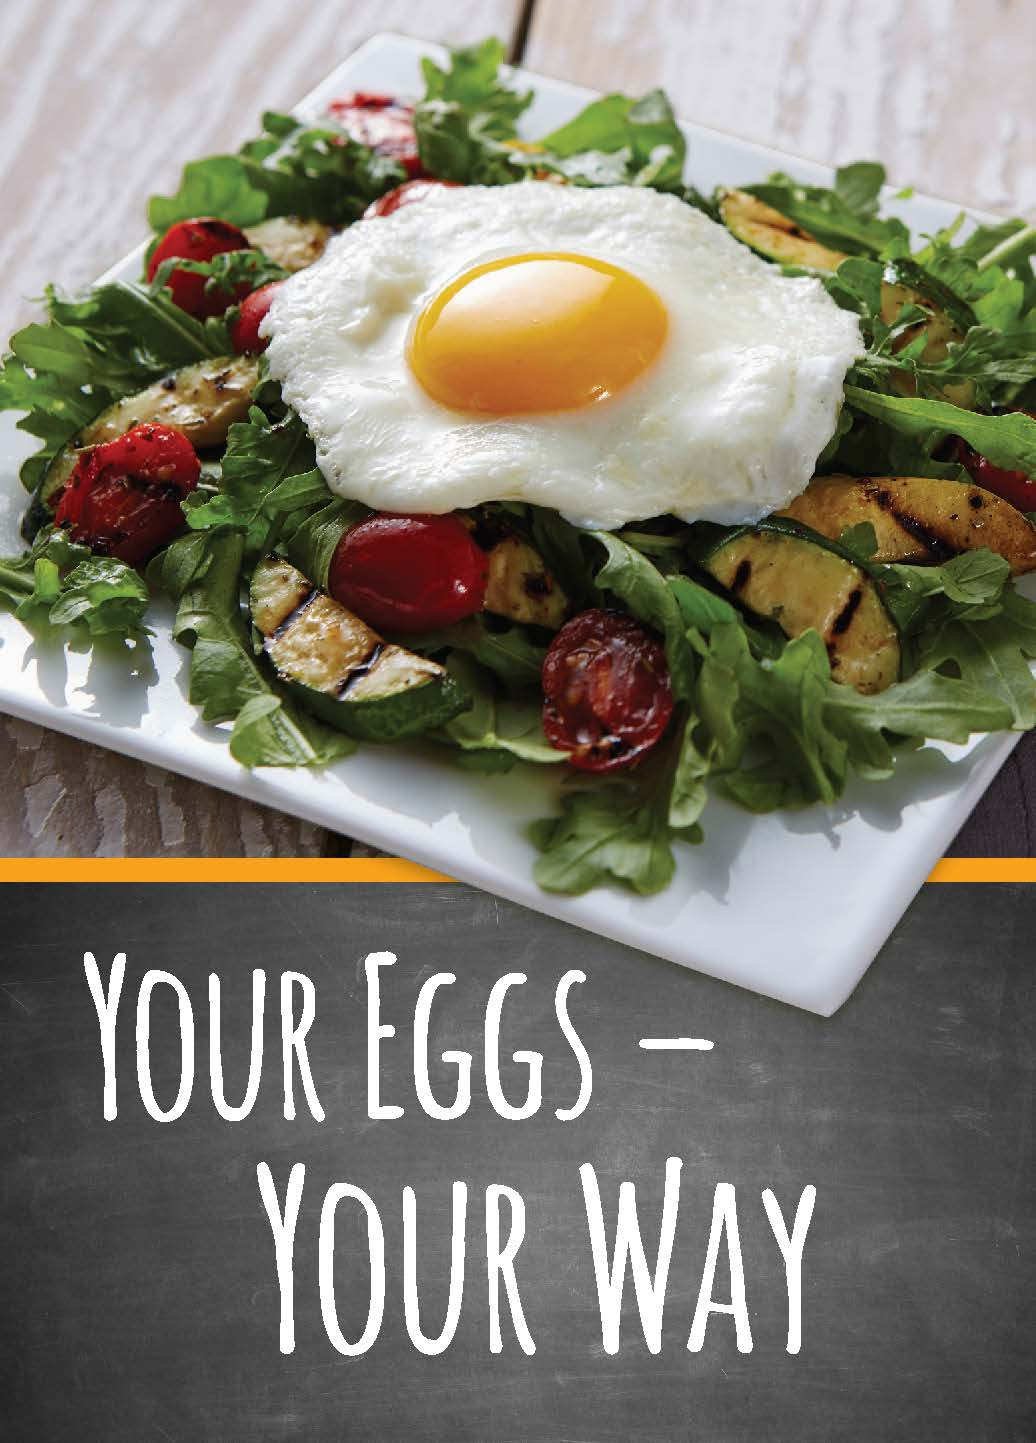 Your Eggs, Your Way